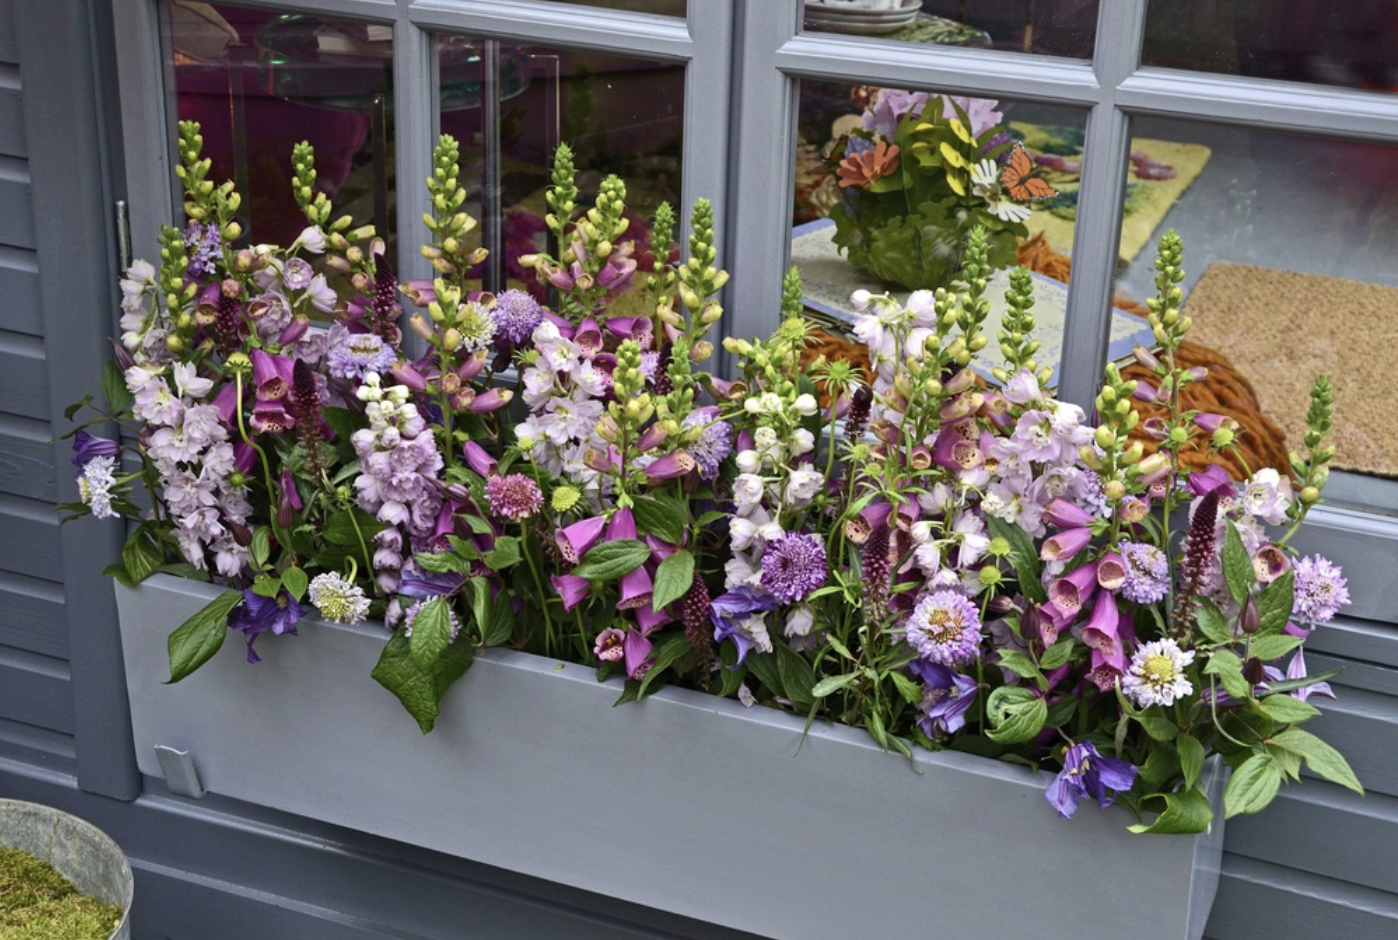 How window box planters can add spring color to your homes exterior how window box planters can add spring color to your homes exterior mightylinksfo